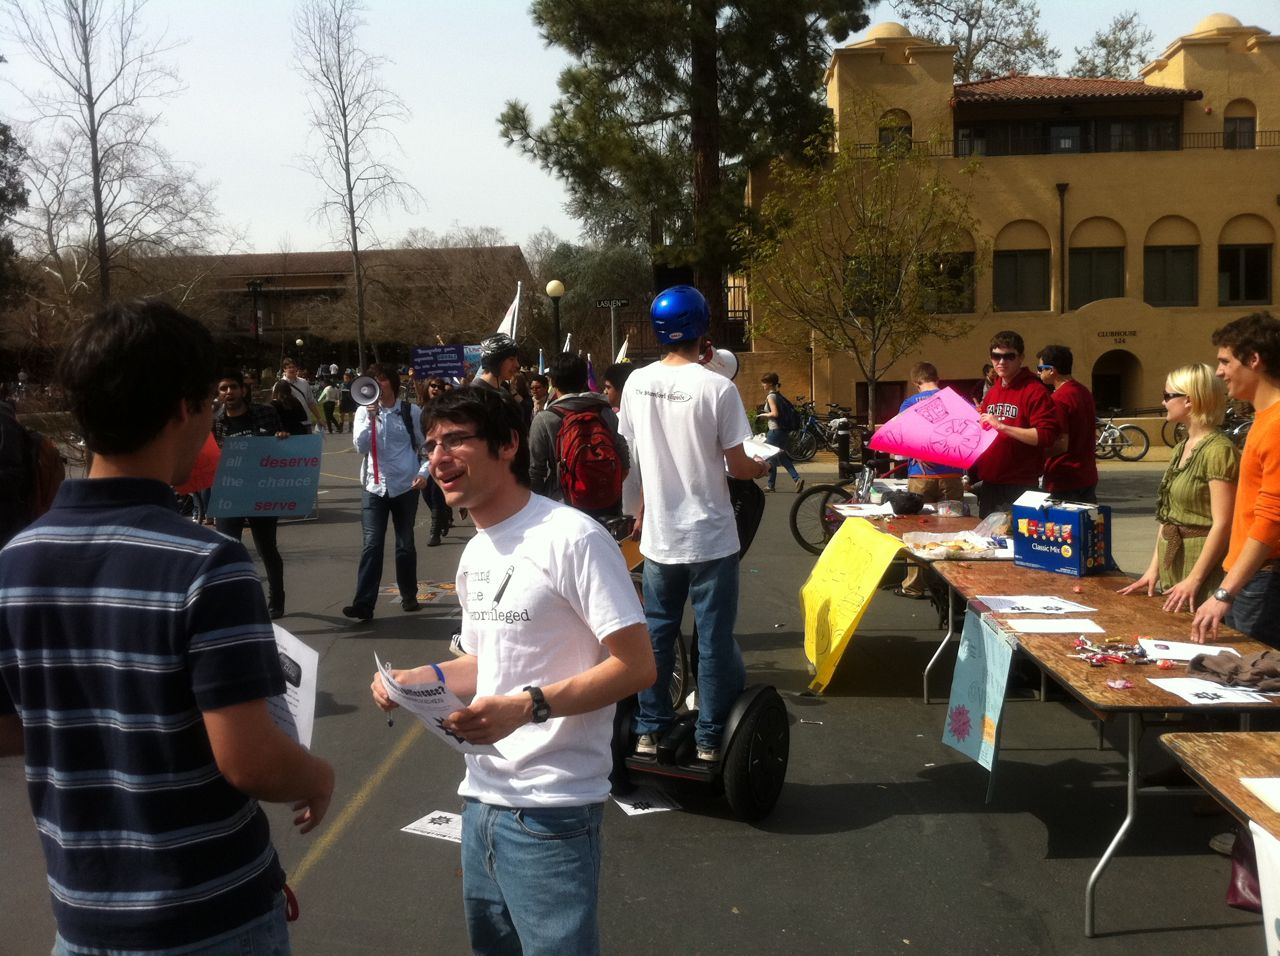 Stanford Groups Hold Activities Fair to Recruit New Members